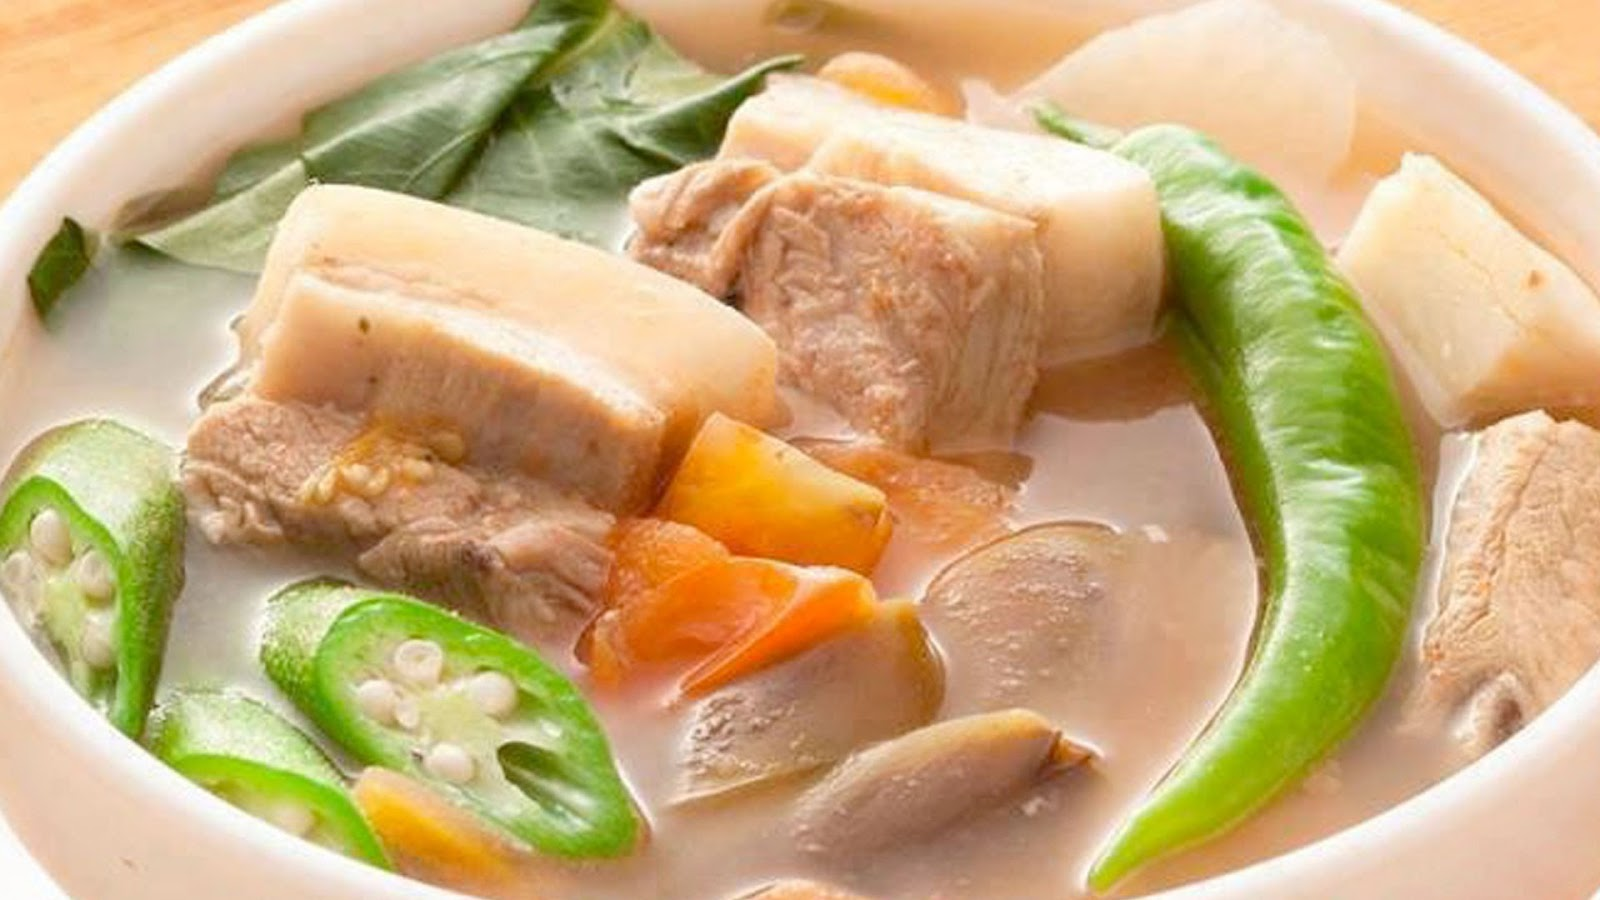 Lasangrecipes Pork Sinigang Sinigang Na Baboy Recipe